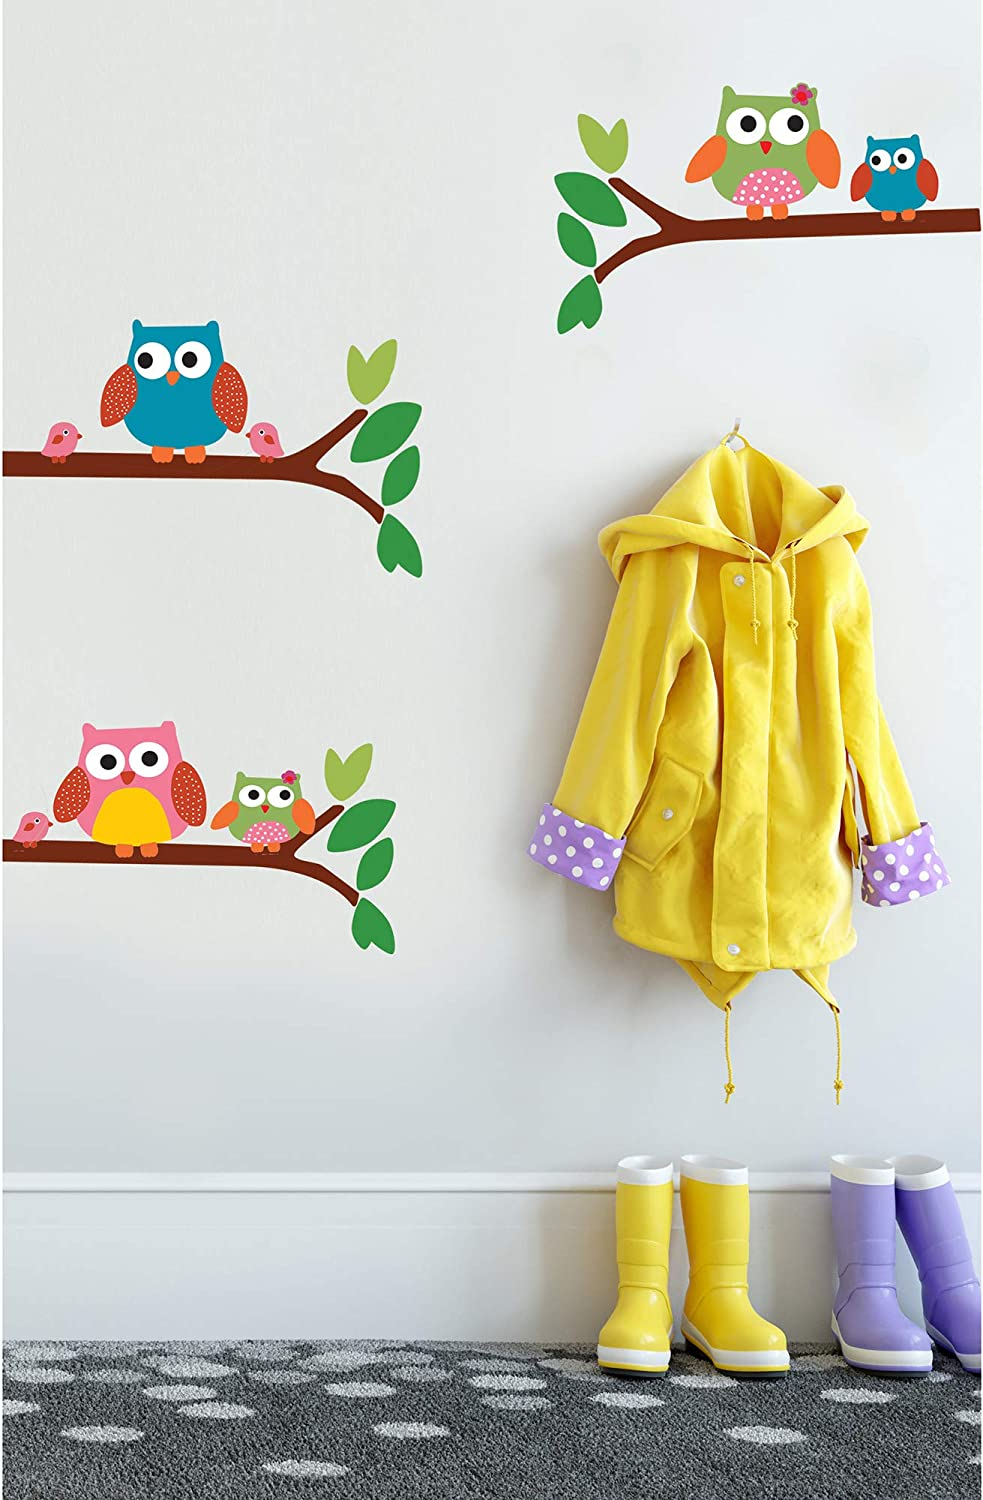 Wallies Vinyl Wall Decals Peel And Stick Owl Wall Stickers For Girls Bedroom Or Nursery 5 Pc Home Kitchen